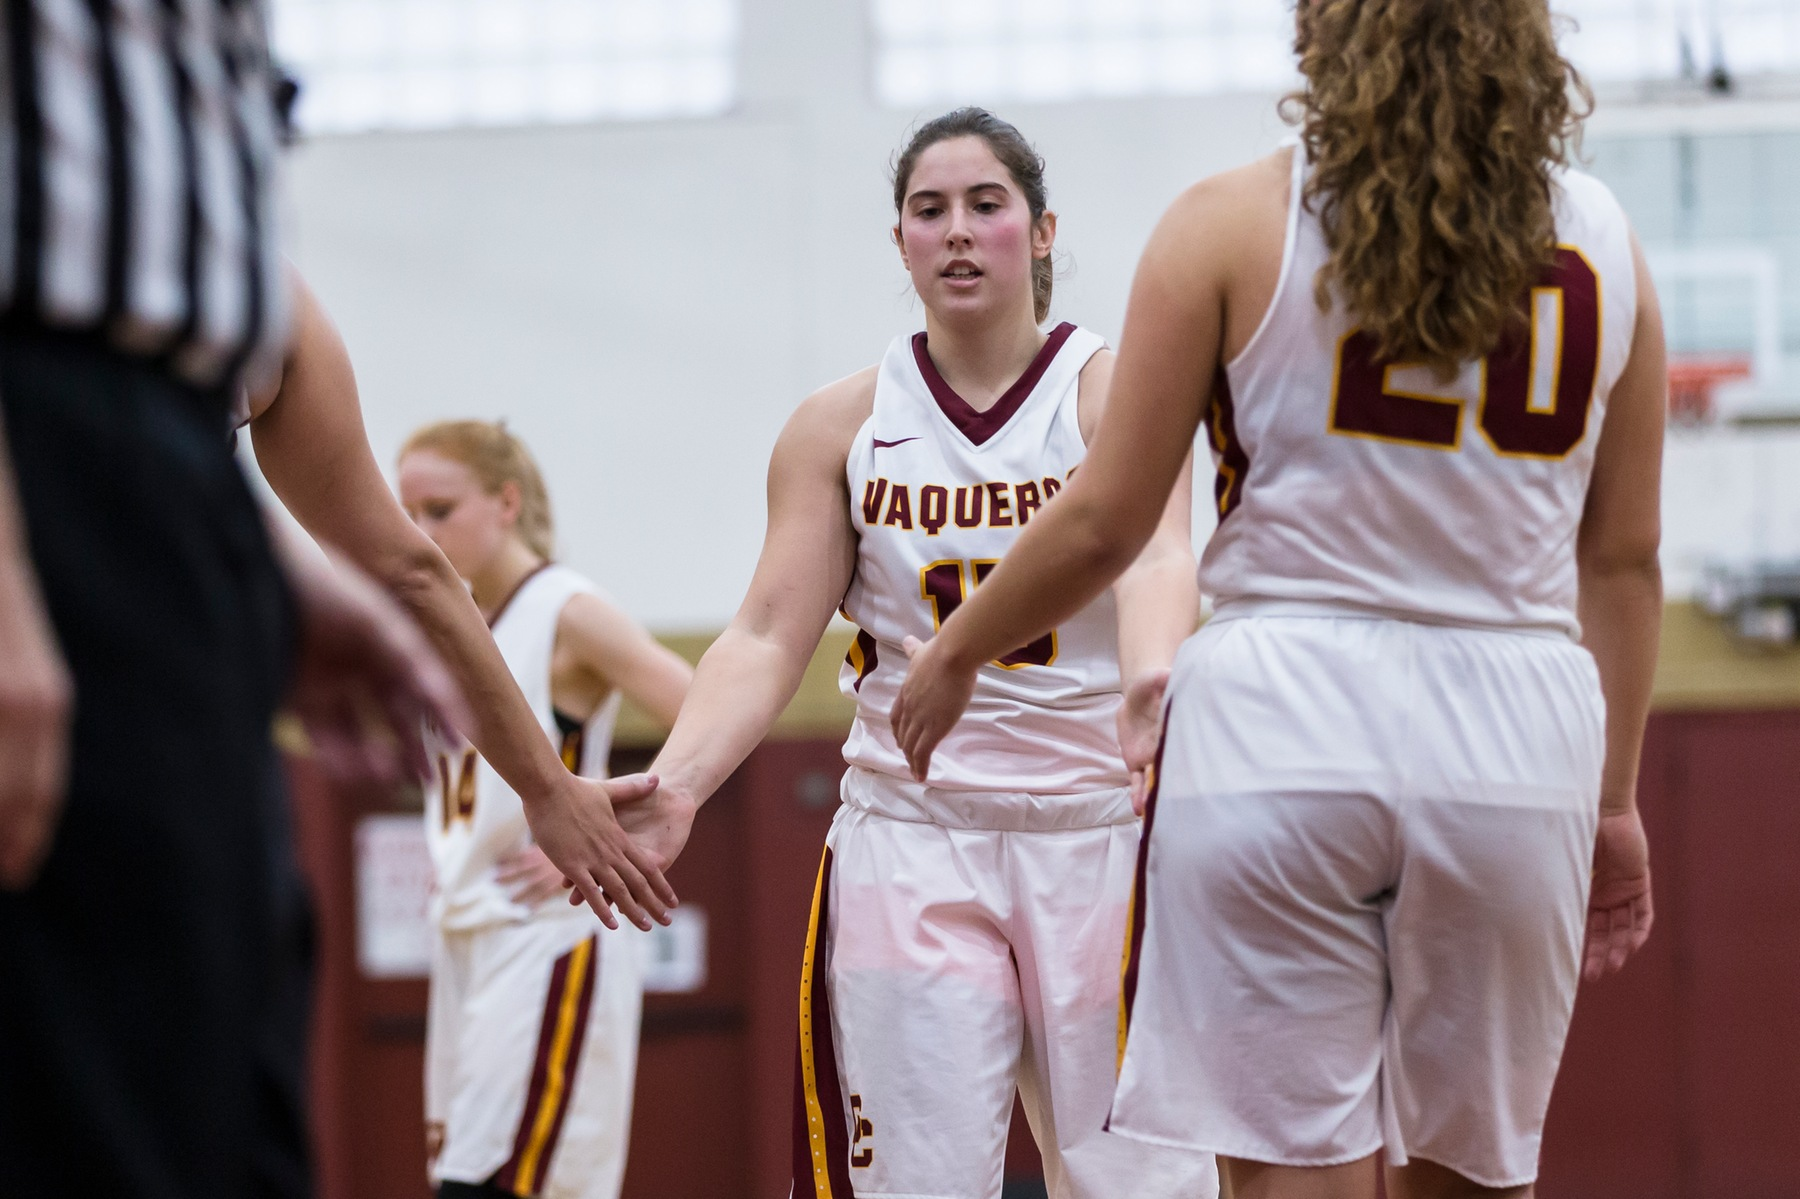 Women's Basketball streaks to 16-4 record with 78-54 win over Victor Valley